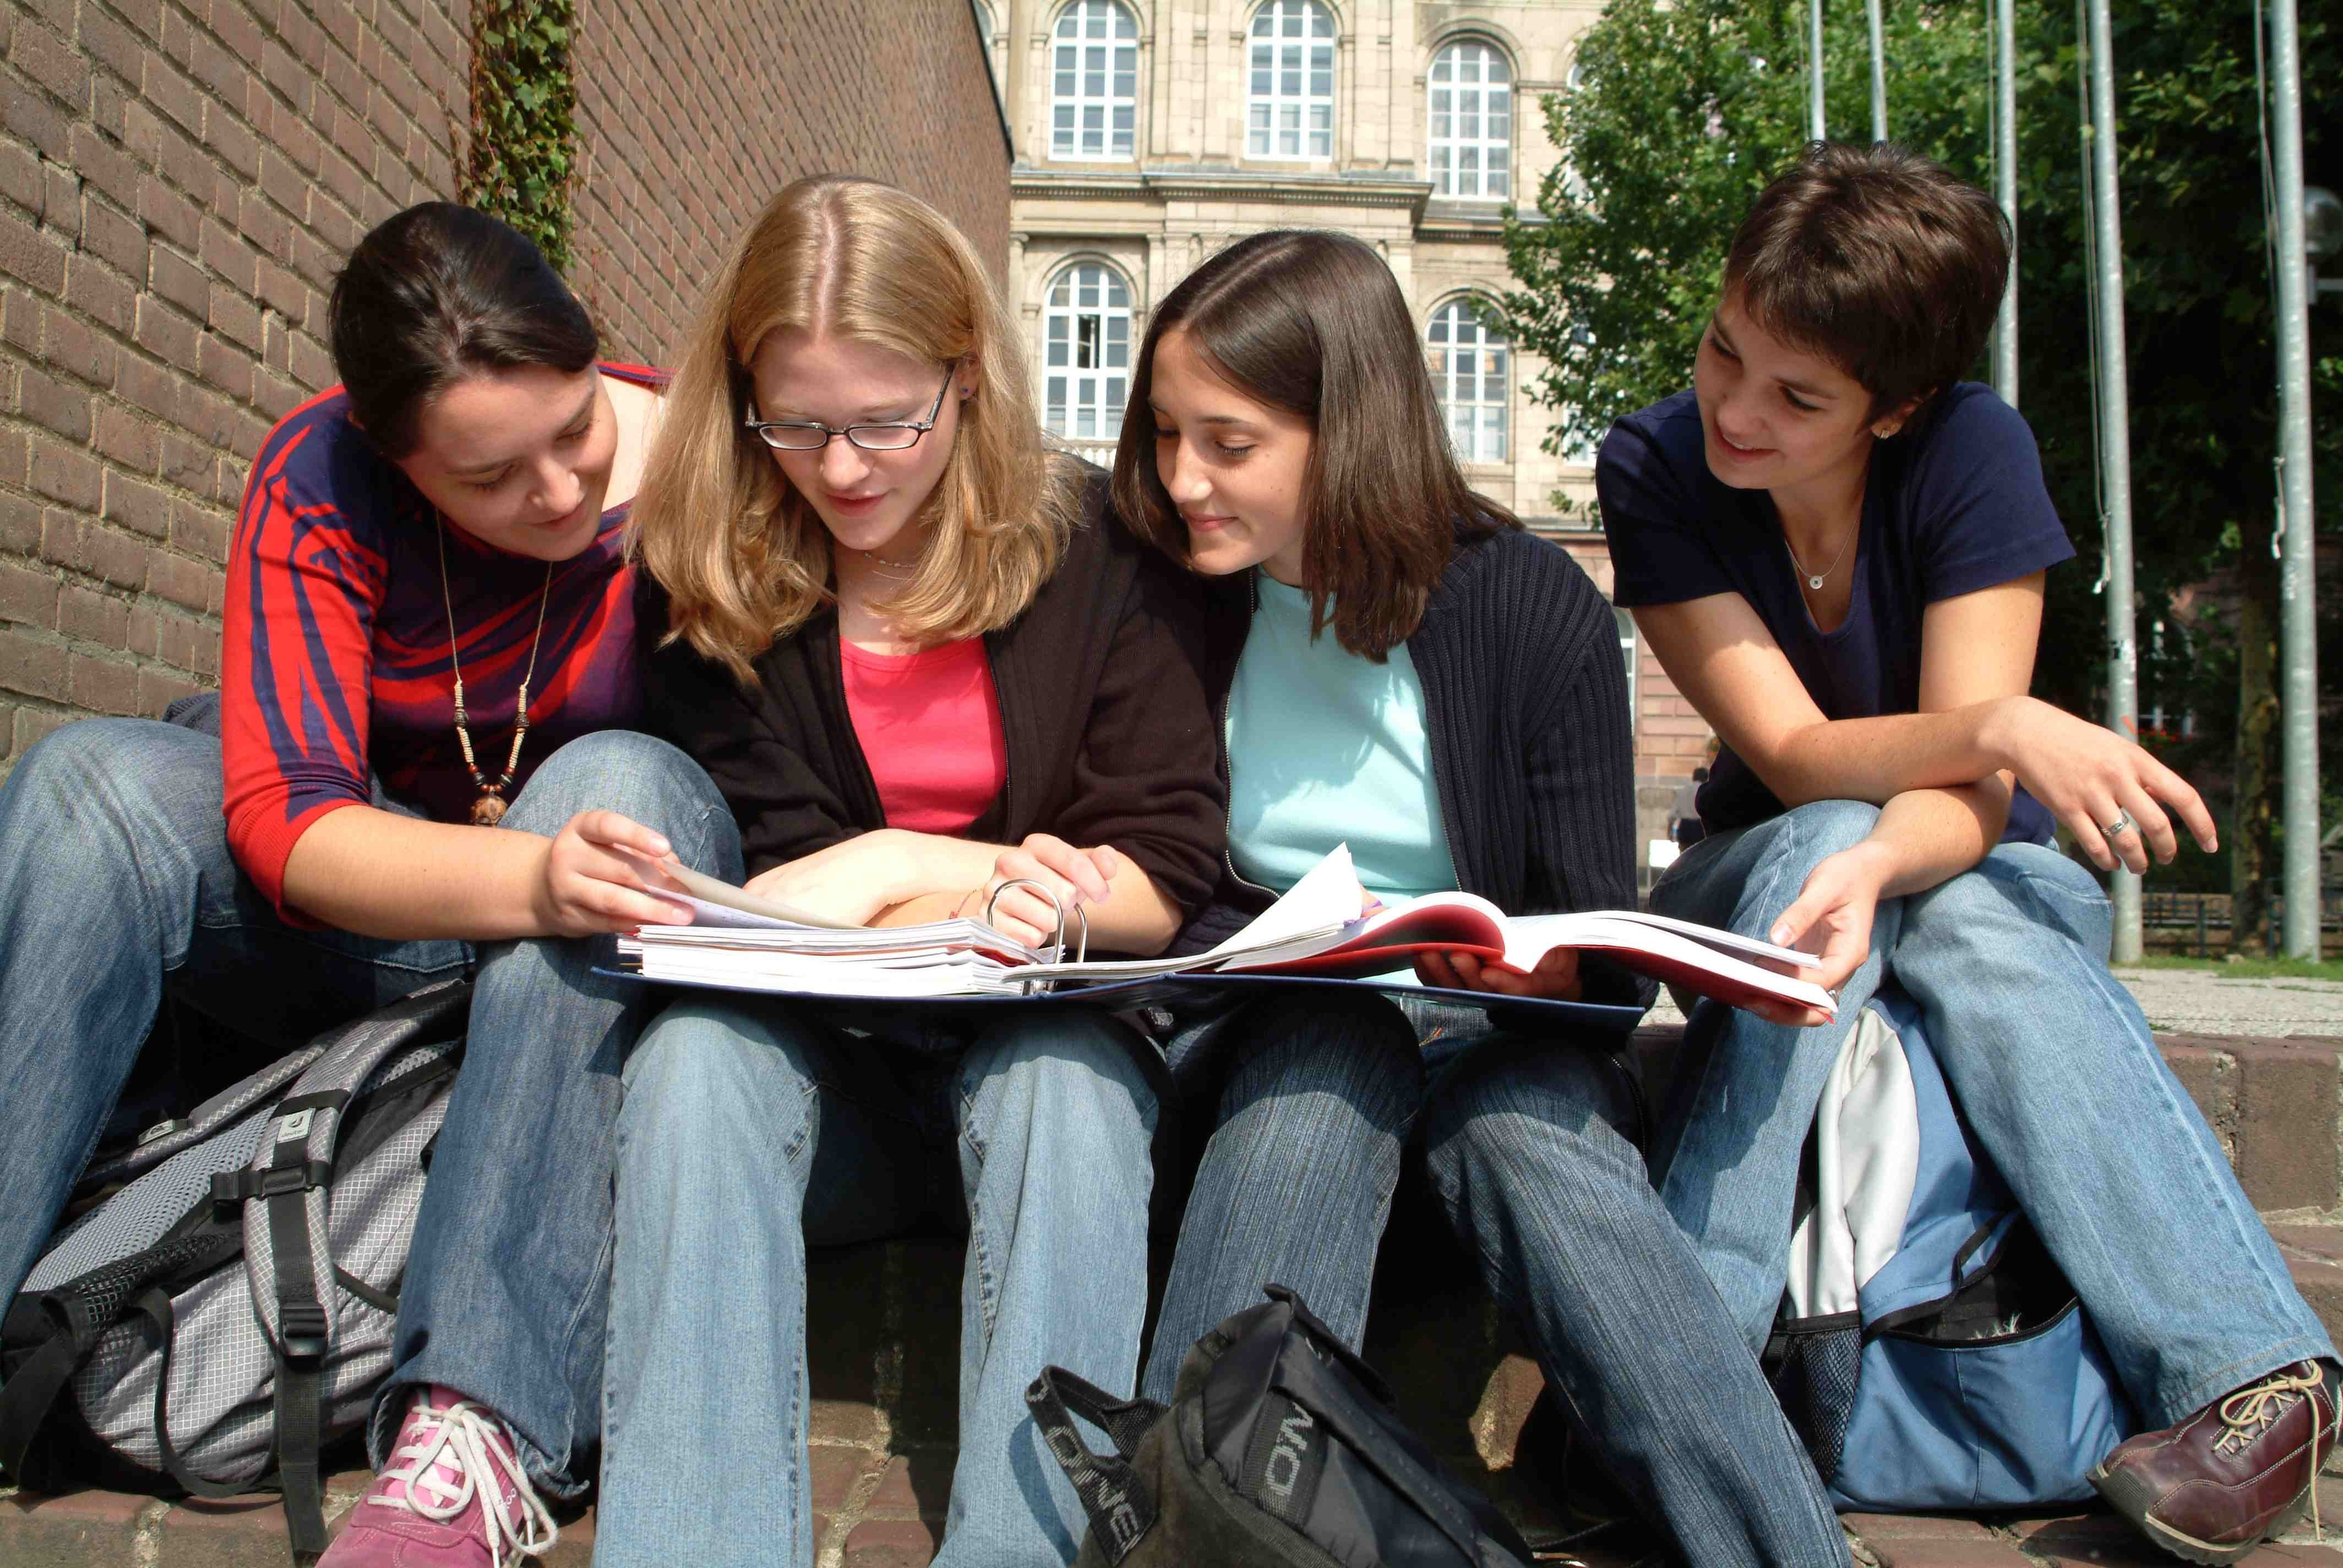 Students reading brochures